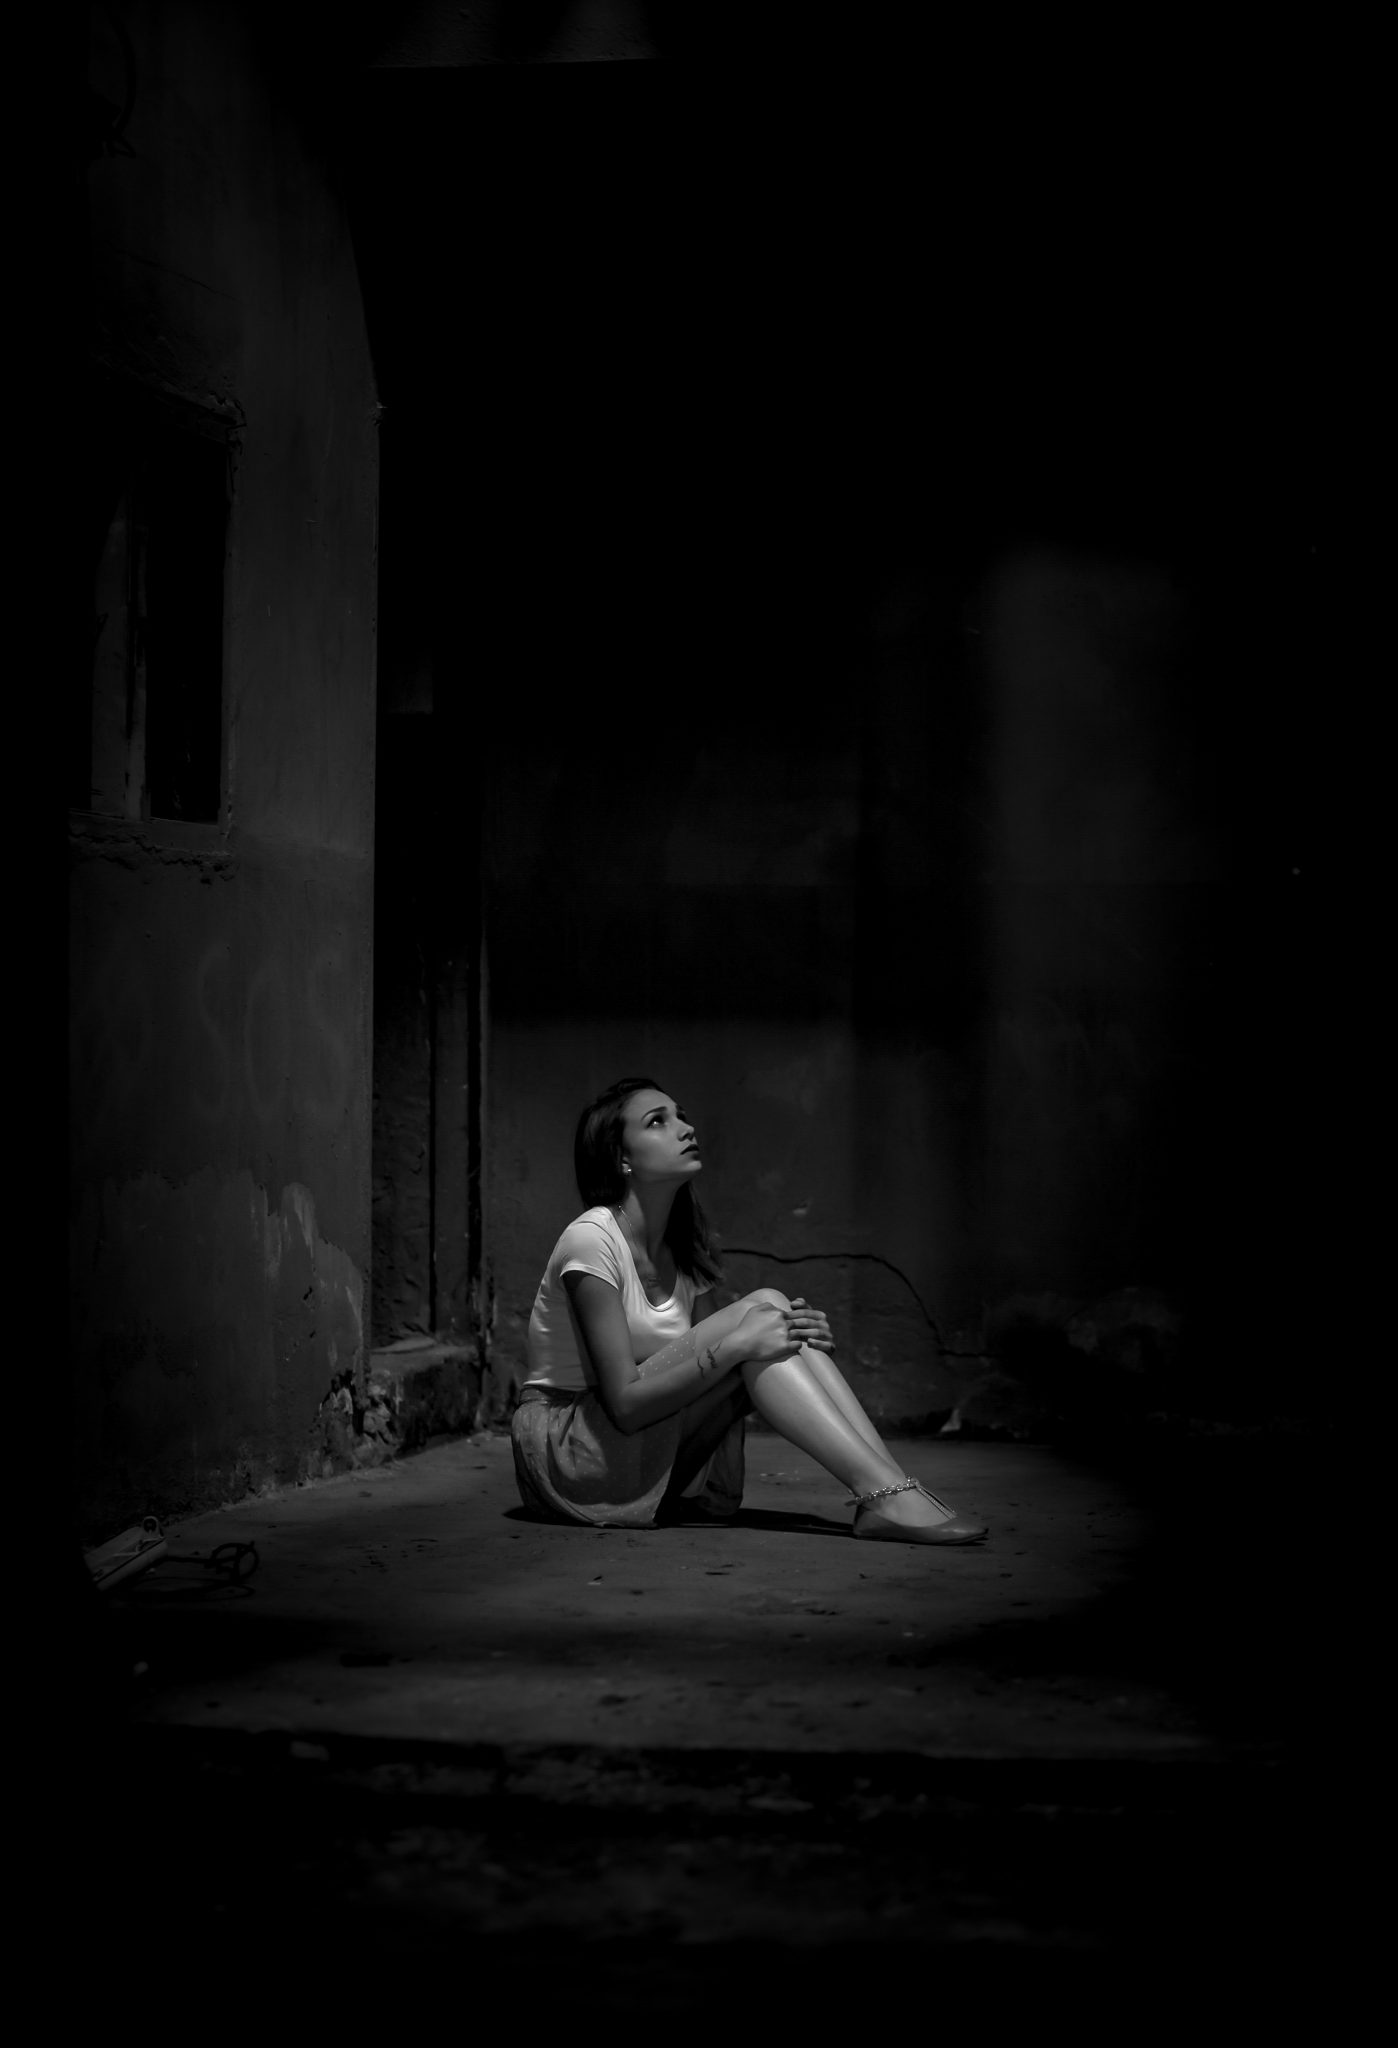 adult alone black and white 2223064